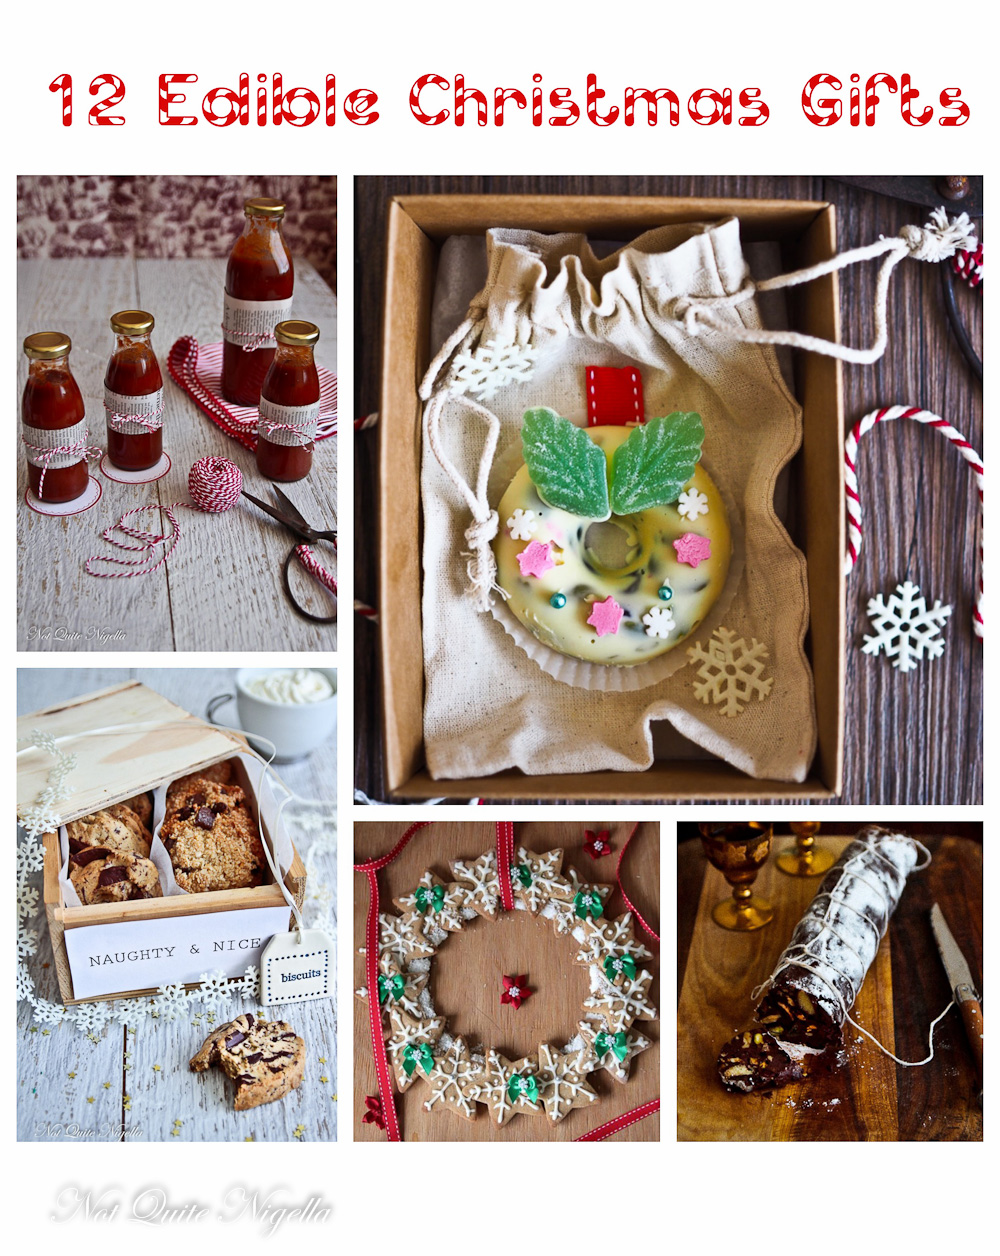 12 Inspired Edible Christmas Ideas, Rocky Road Wreaths @ Not Quite ...